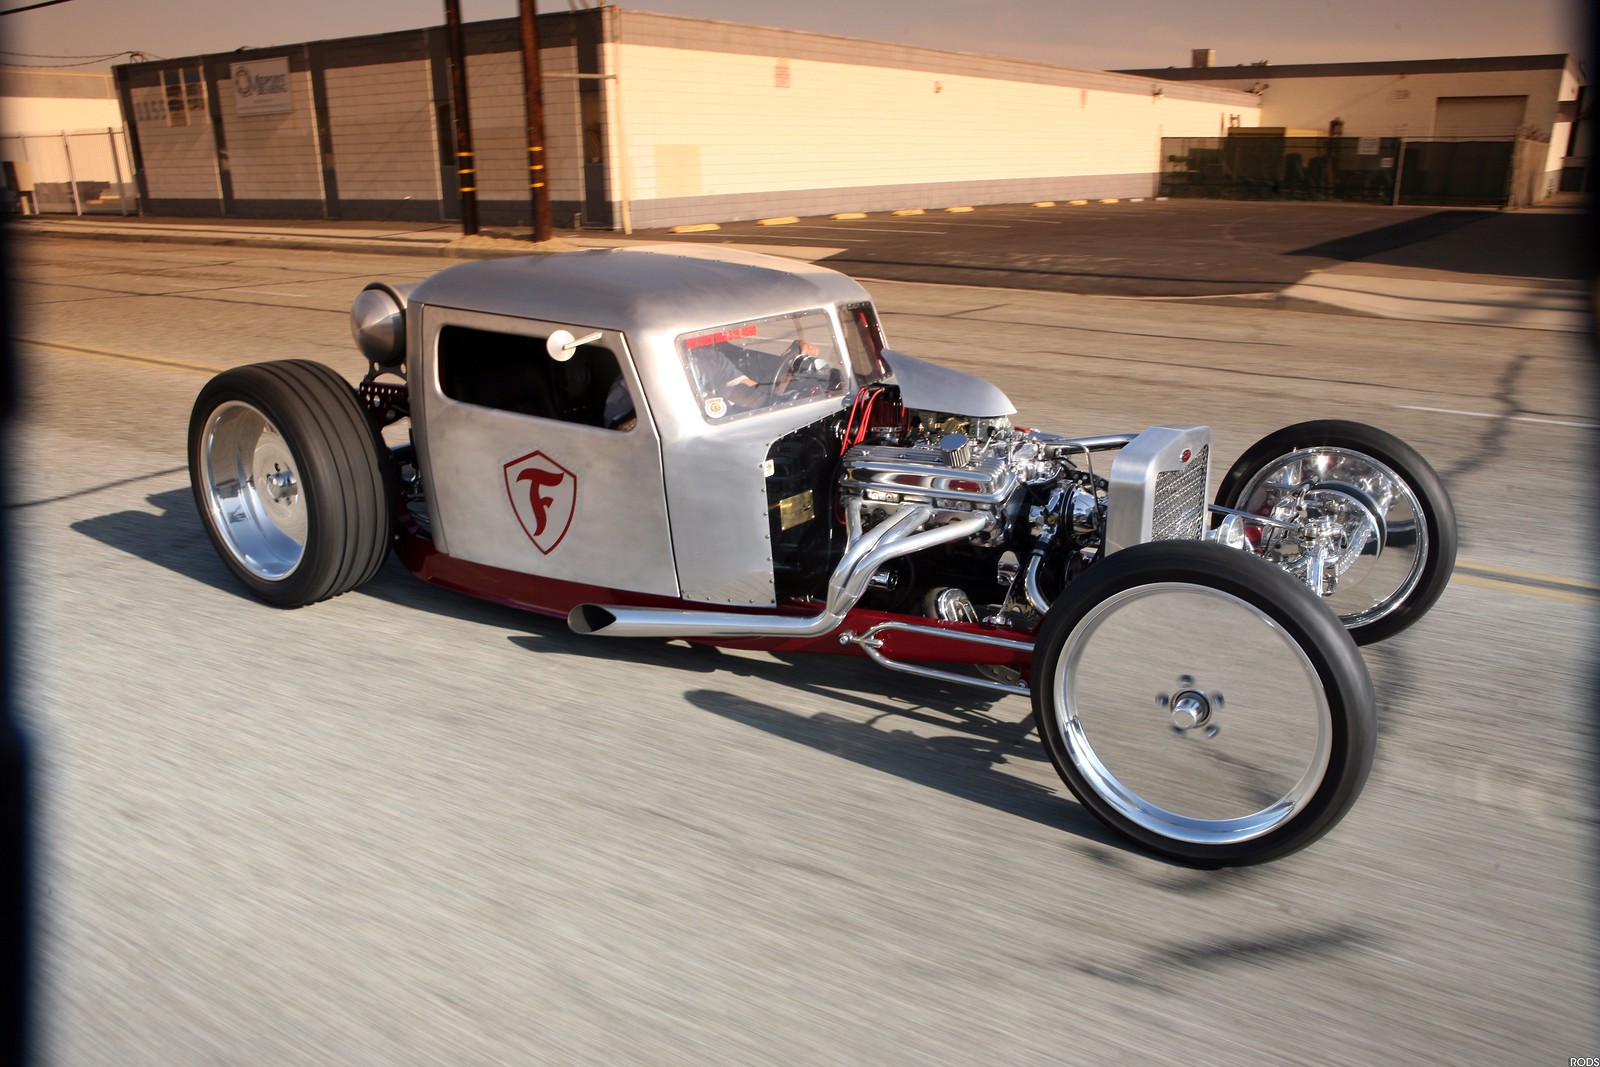 The Amazo Effect: James Crosby's 1956 Peterbilt Conventional